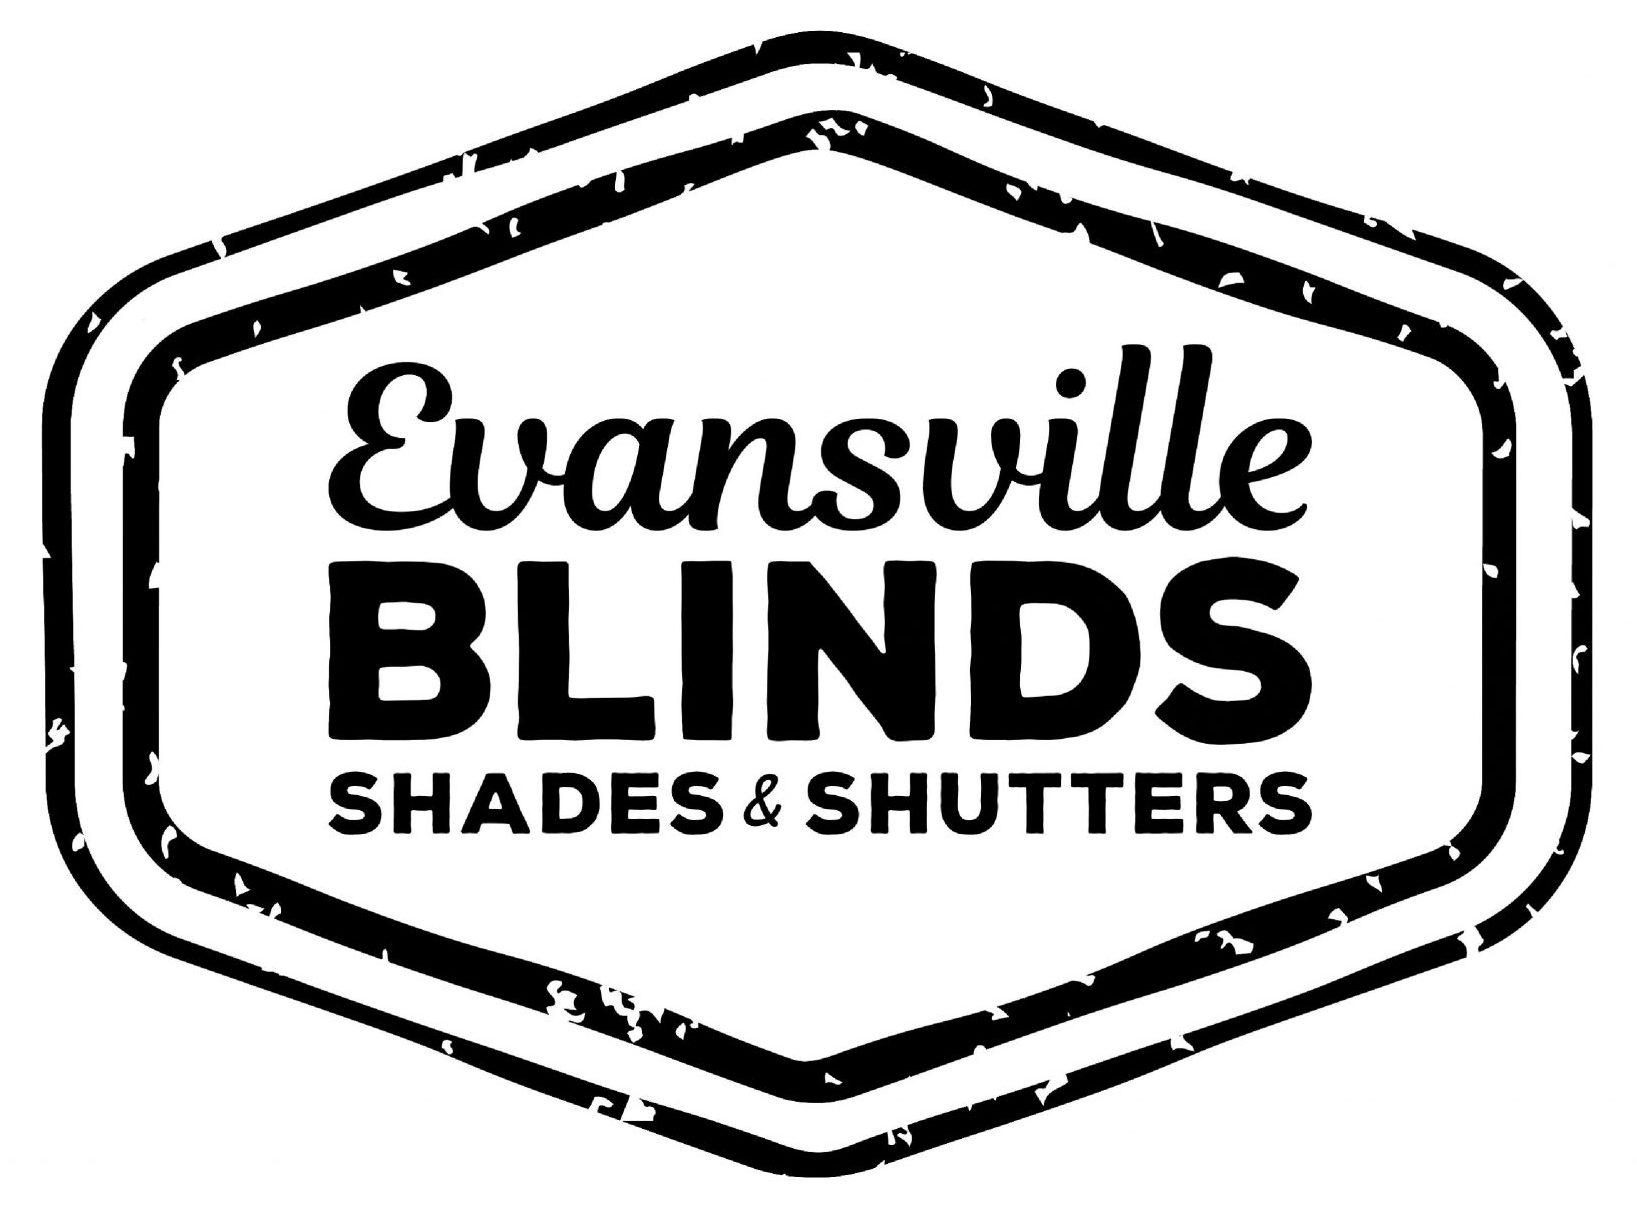 Evansville Blinds Shades & Shutters